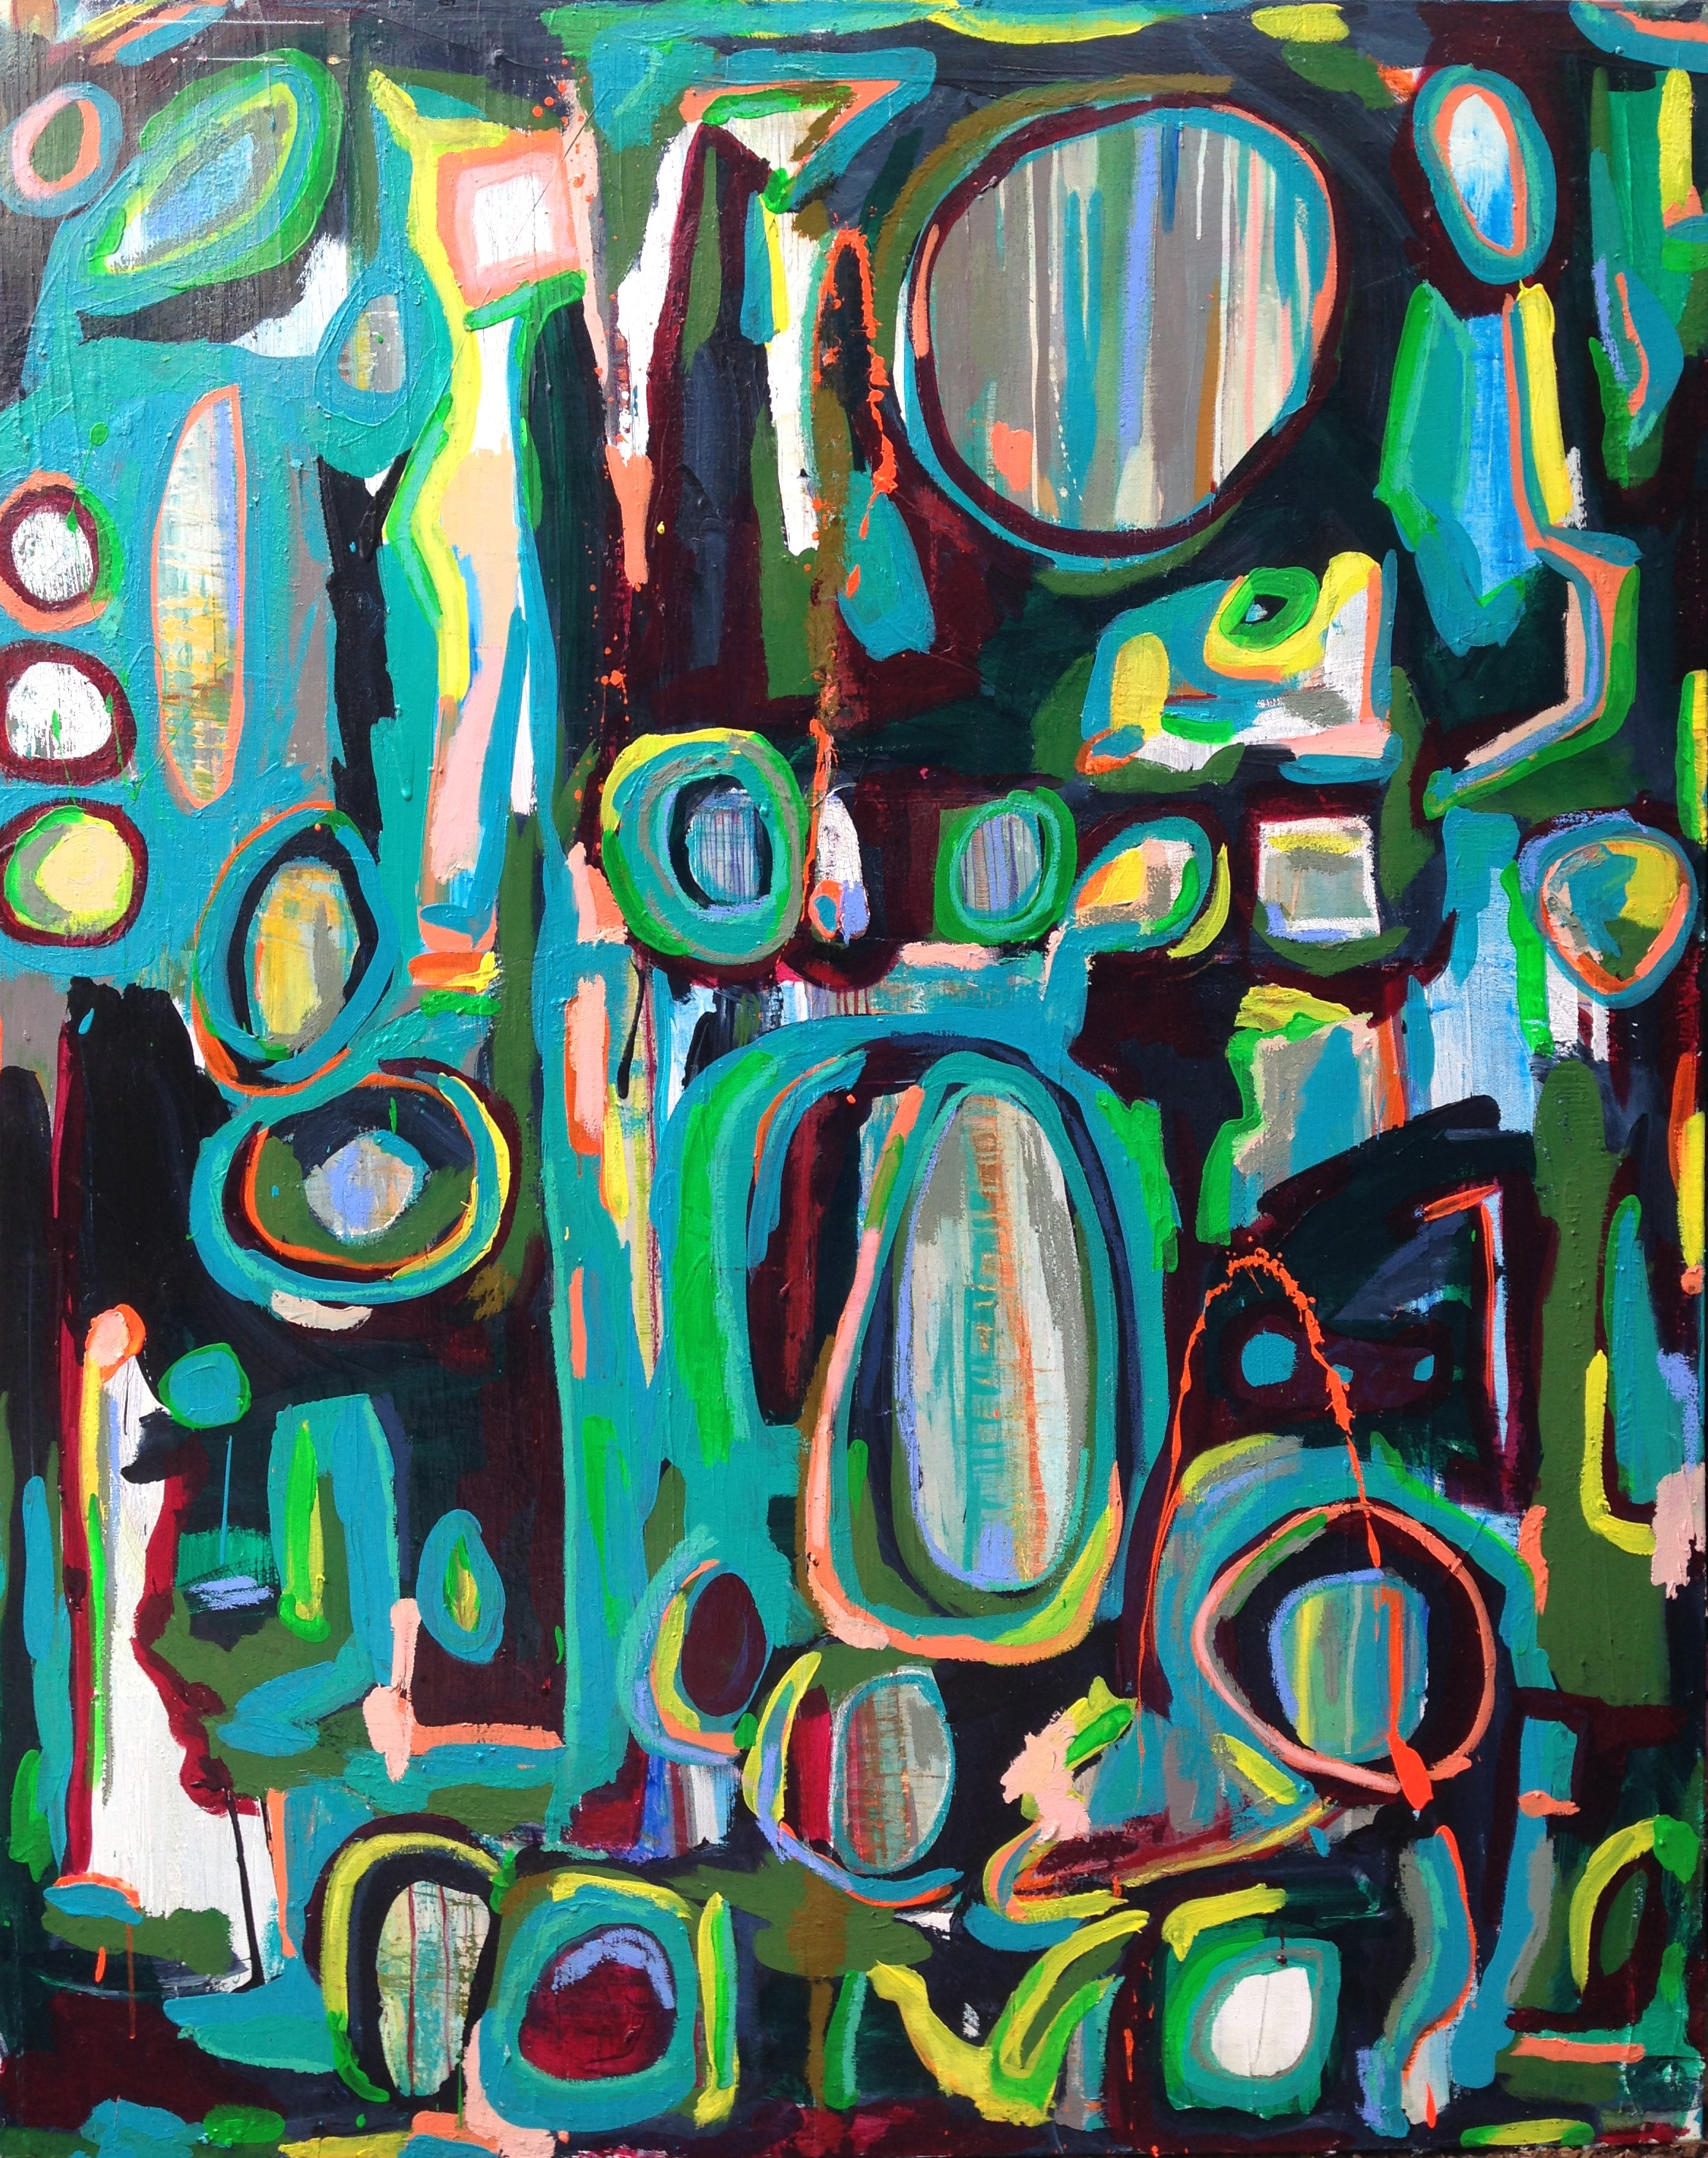 Sleepless Confusion  (SOLD)   4x5' Acrylic and Oil Stick on Gallery Wrapped Canvas